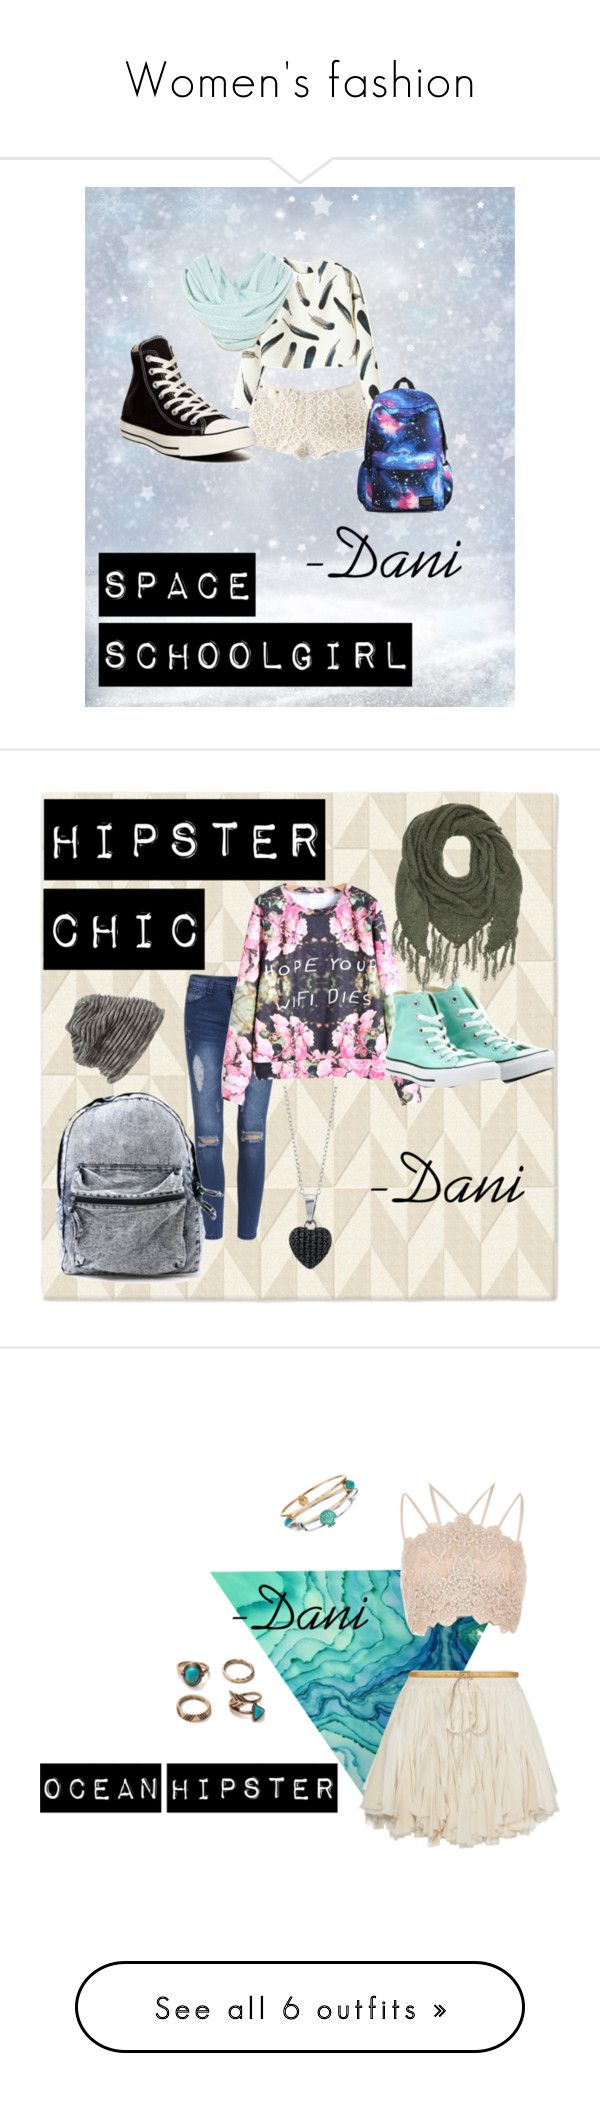 """Women's fashion"" by danniyellington on Polyvore featuring Converse, West Elm, WithChic, Grace Hats, BERRICLE, Charlotte Russe, Hipster, denim, converse and winterfashion"